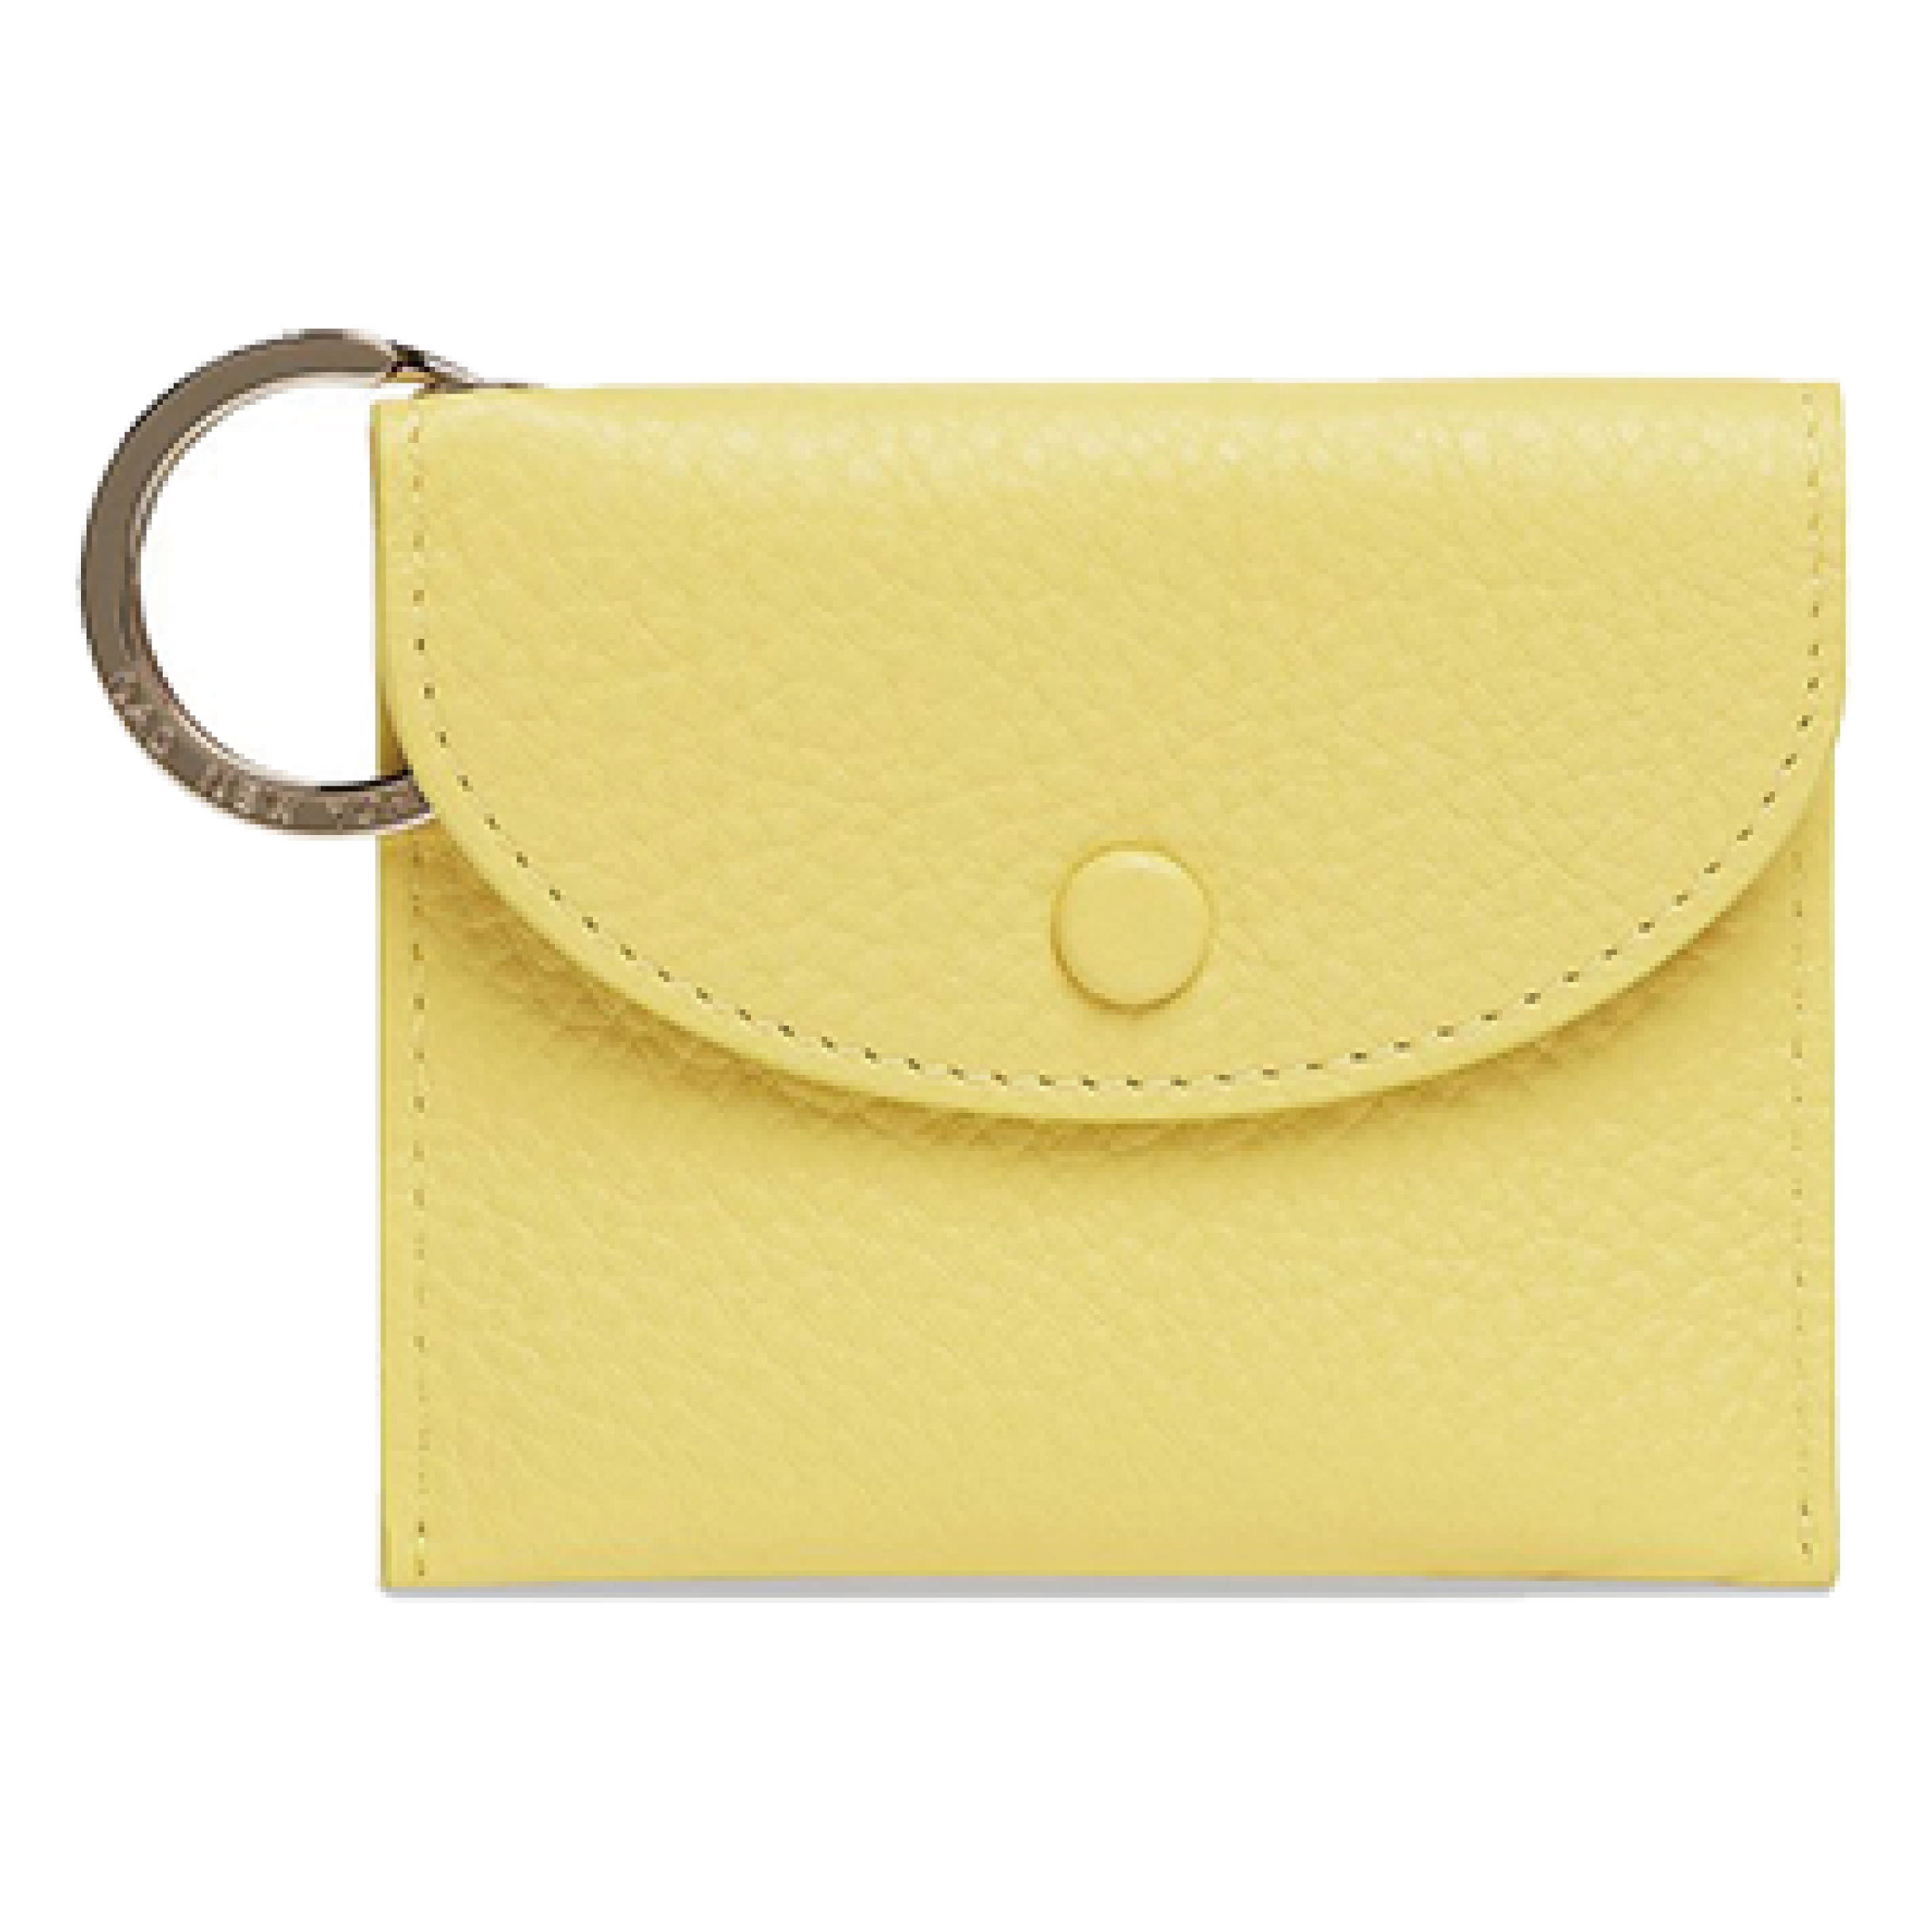 shop oad new york wallets & card holders